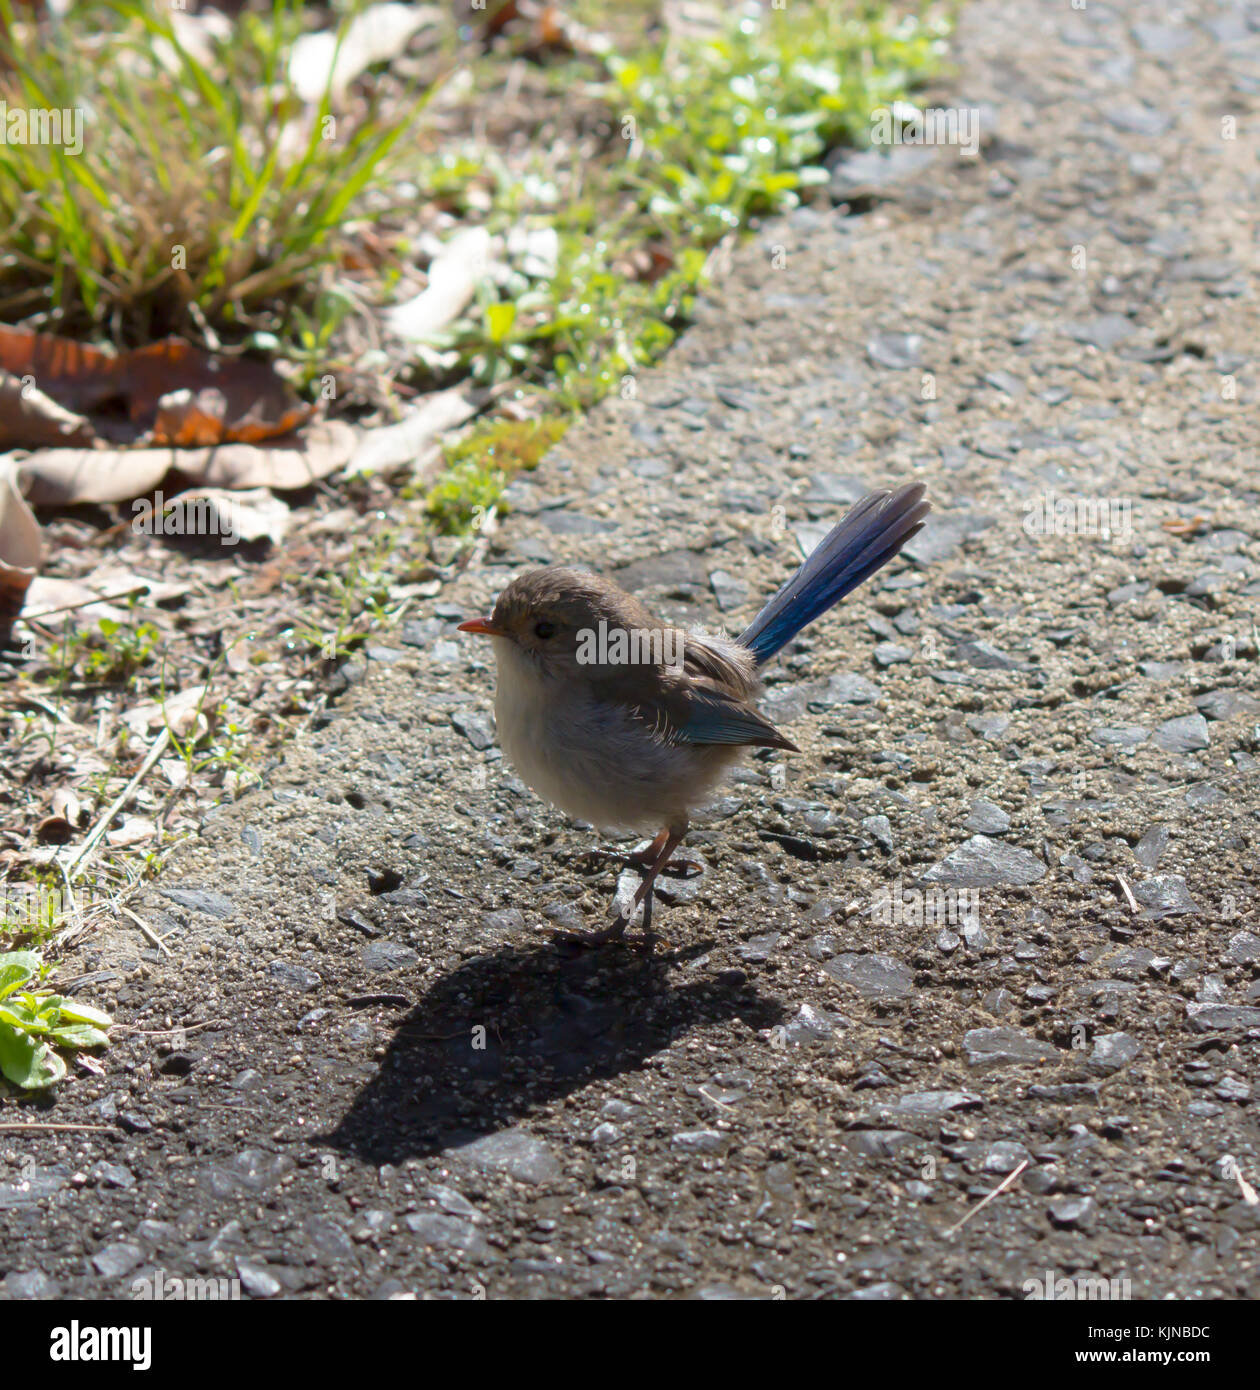 Female  Splendid Fairywren (Malurus splendens),  Splendid Wren or  Blue Wren in Western Australia  a passerine bird Stock Photo